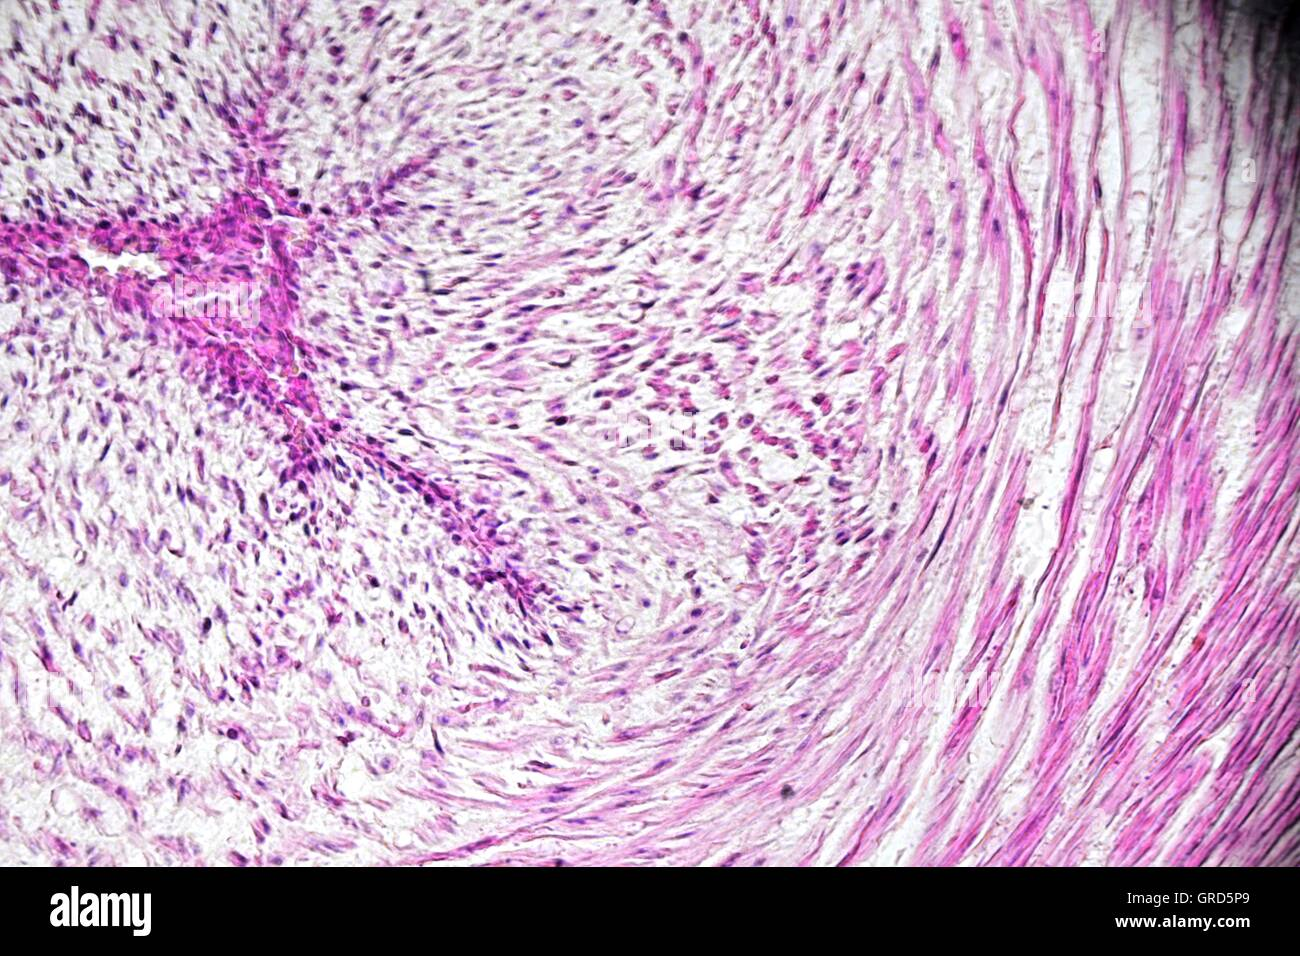 Microscopic Picture Of Human Umbilical Vein - Stock Image